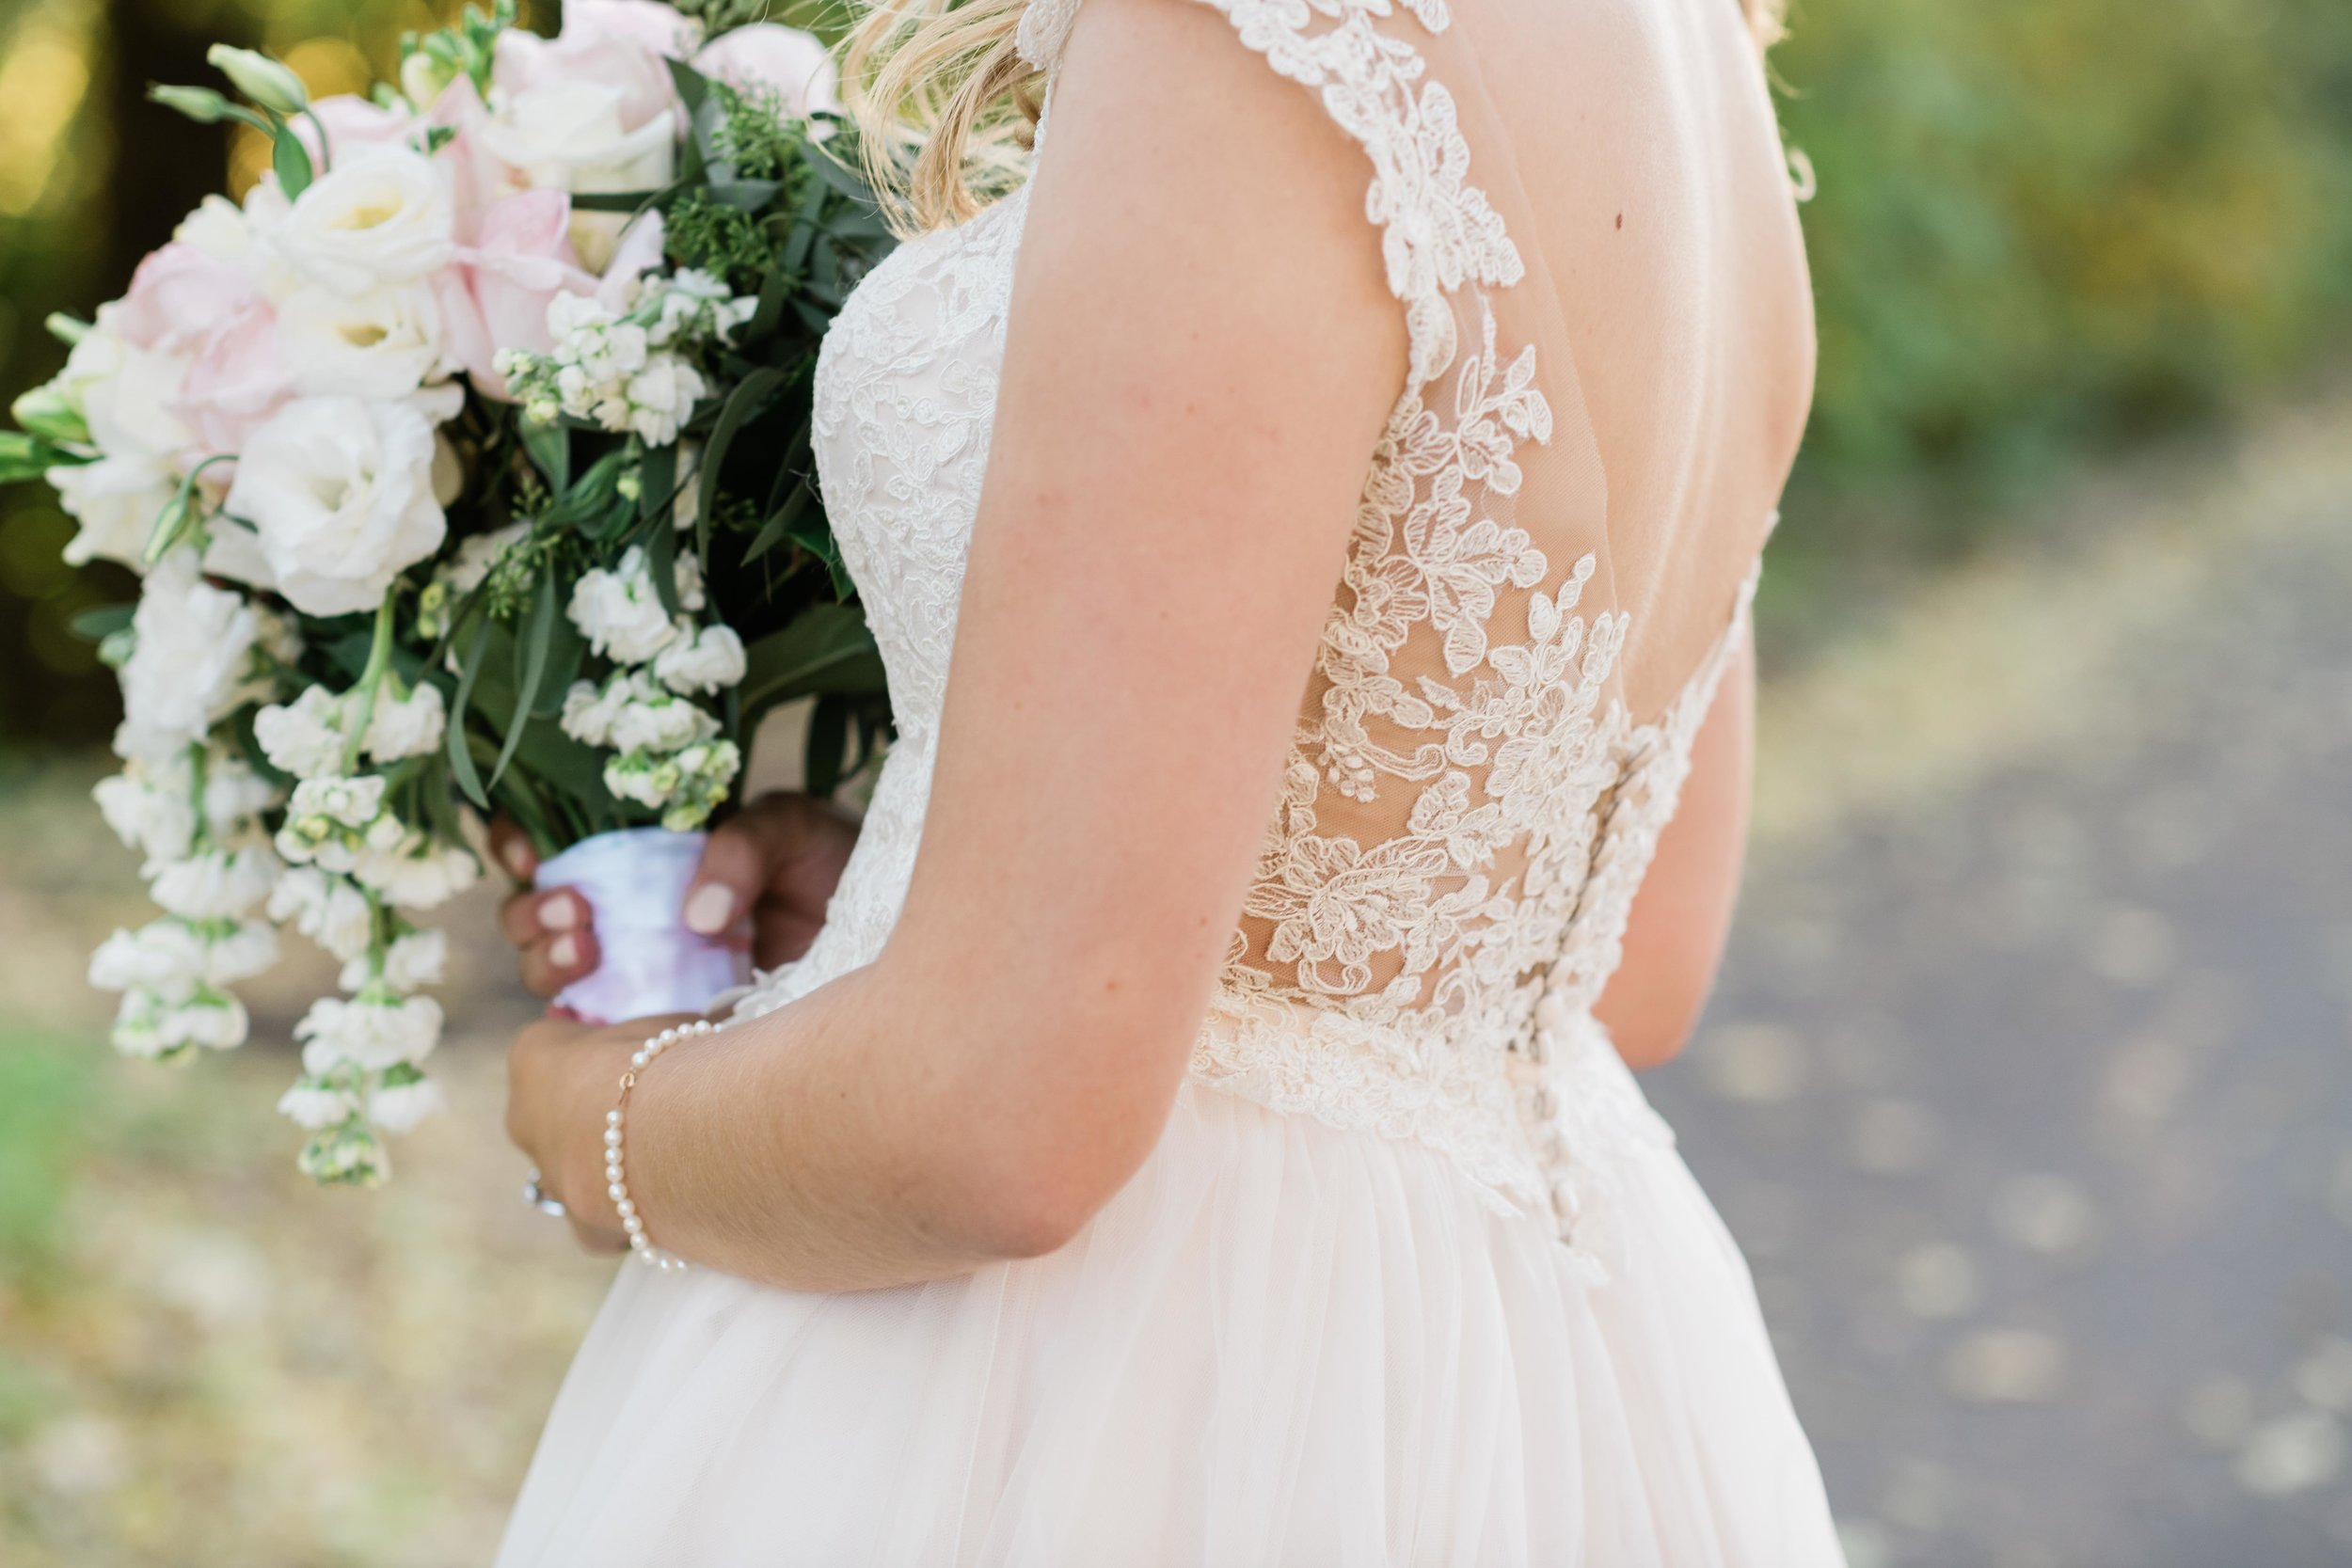 Back of bride's dress as she holds her bouquet